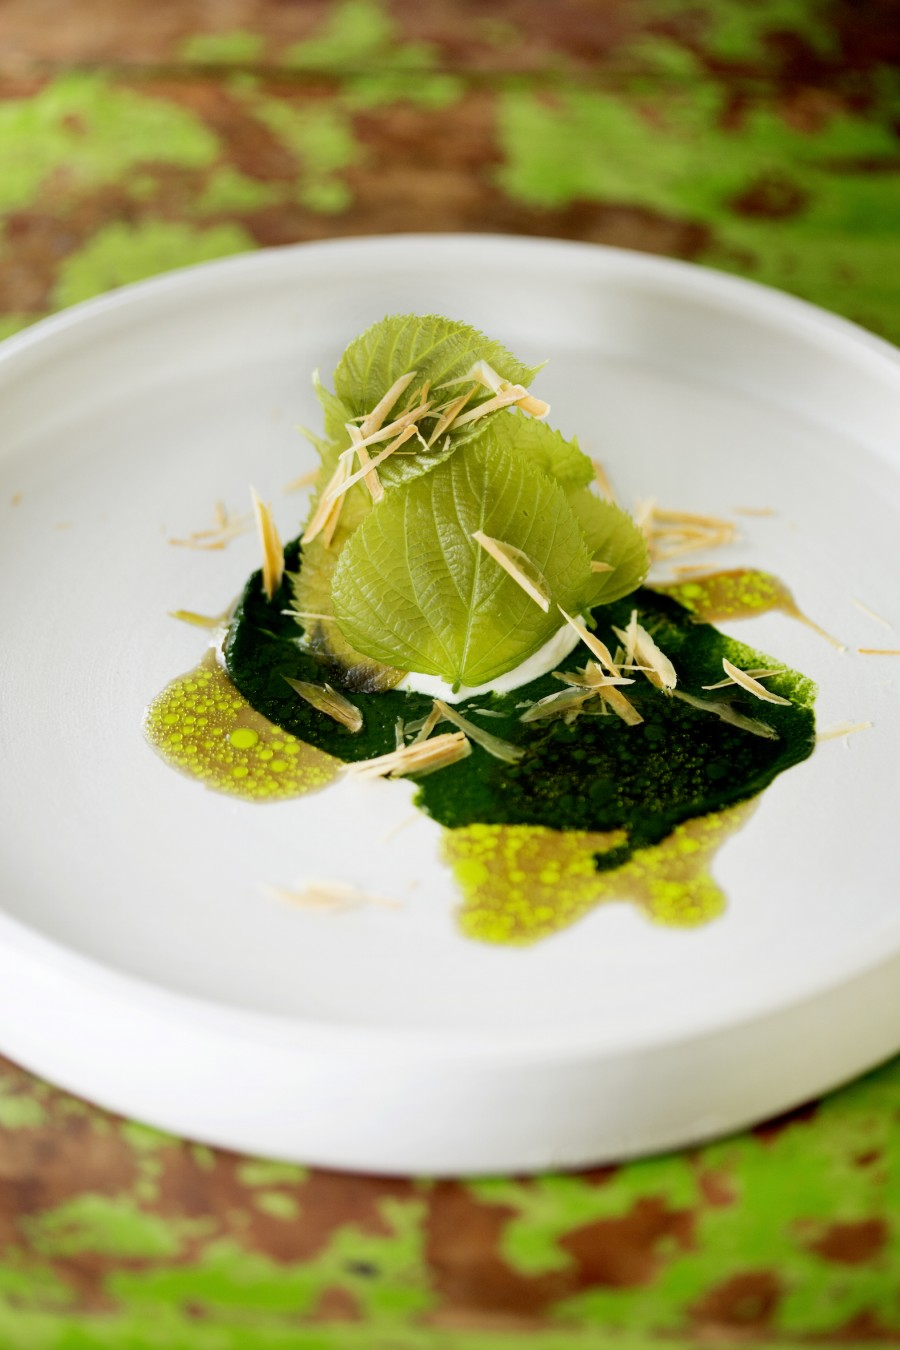 Young almond cheese with lime tree leaves, hogweed and fermented mushrooms served on a clay plate by J. C. Herman.